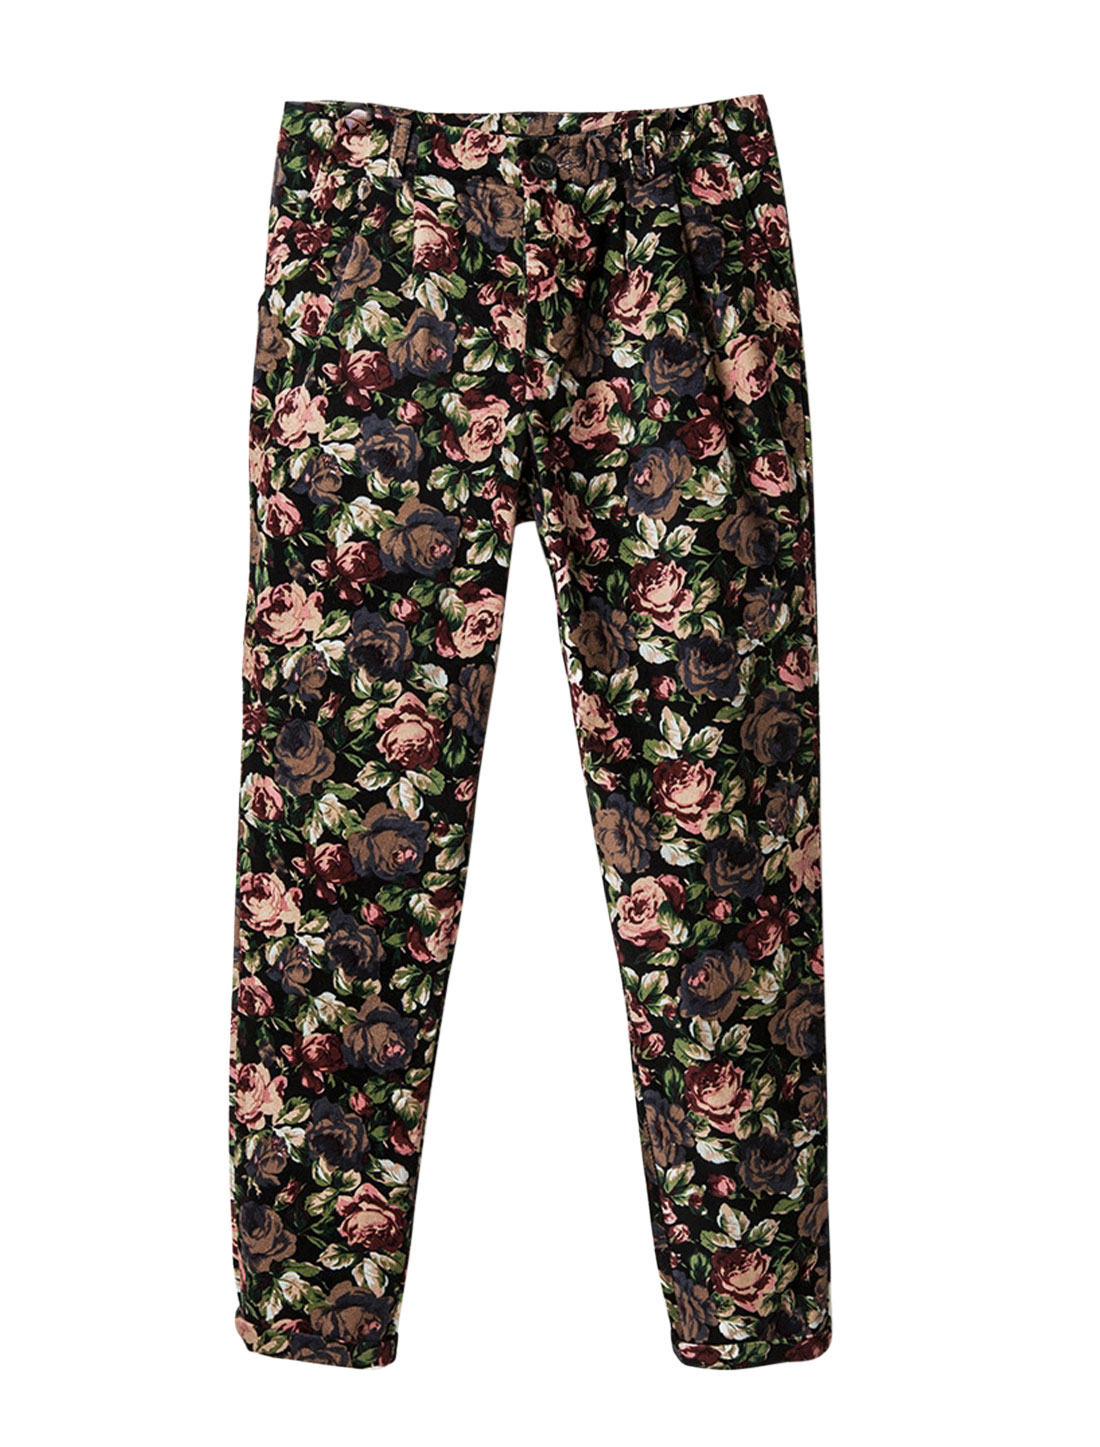 Men Zip Closure One Button Floral Prints Chic Pants Multi Color W30